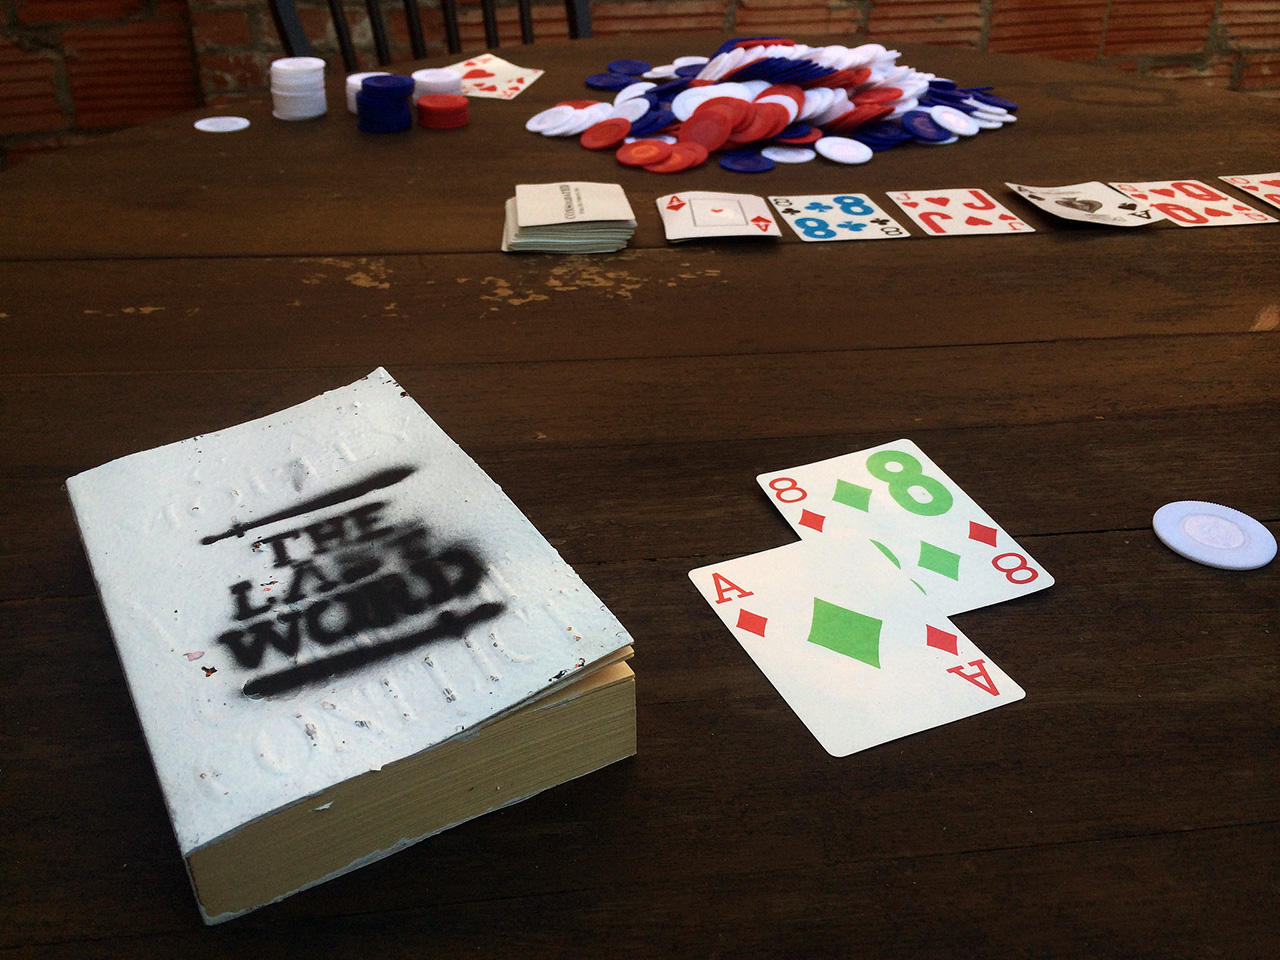 On the poker table inside the saloon